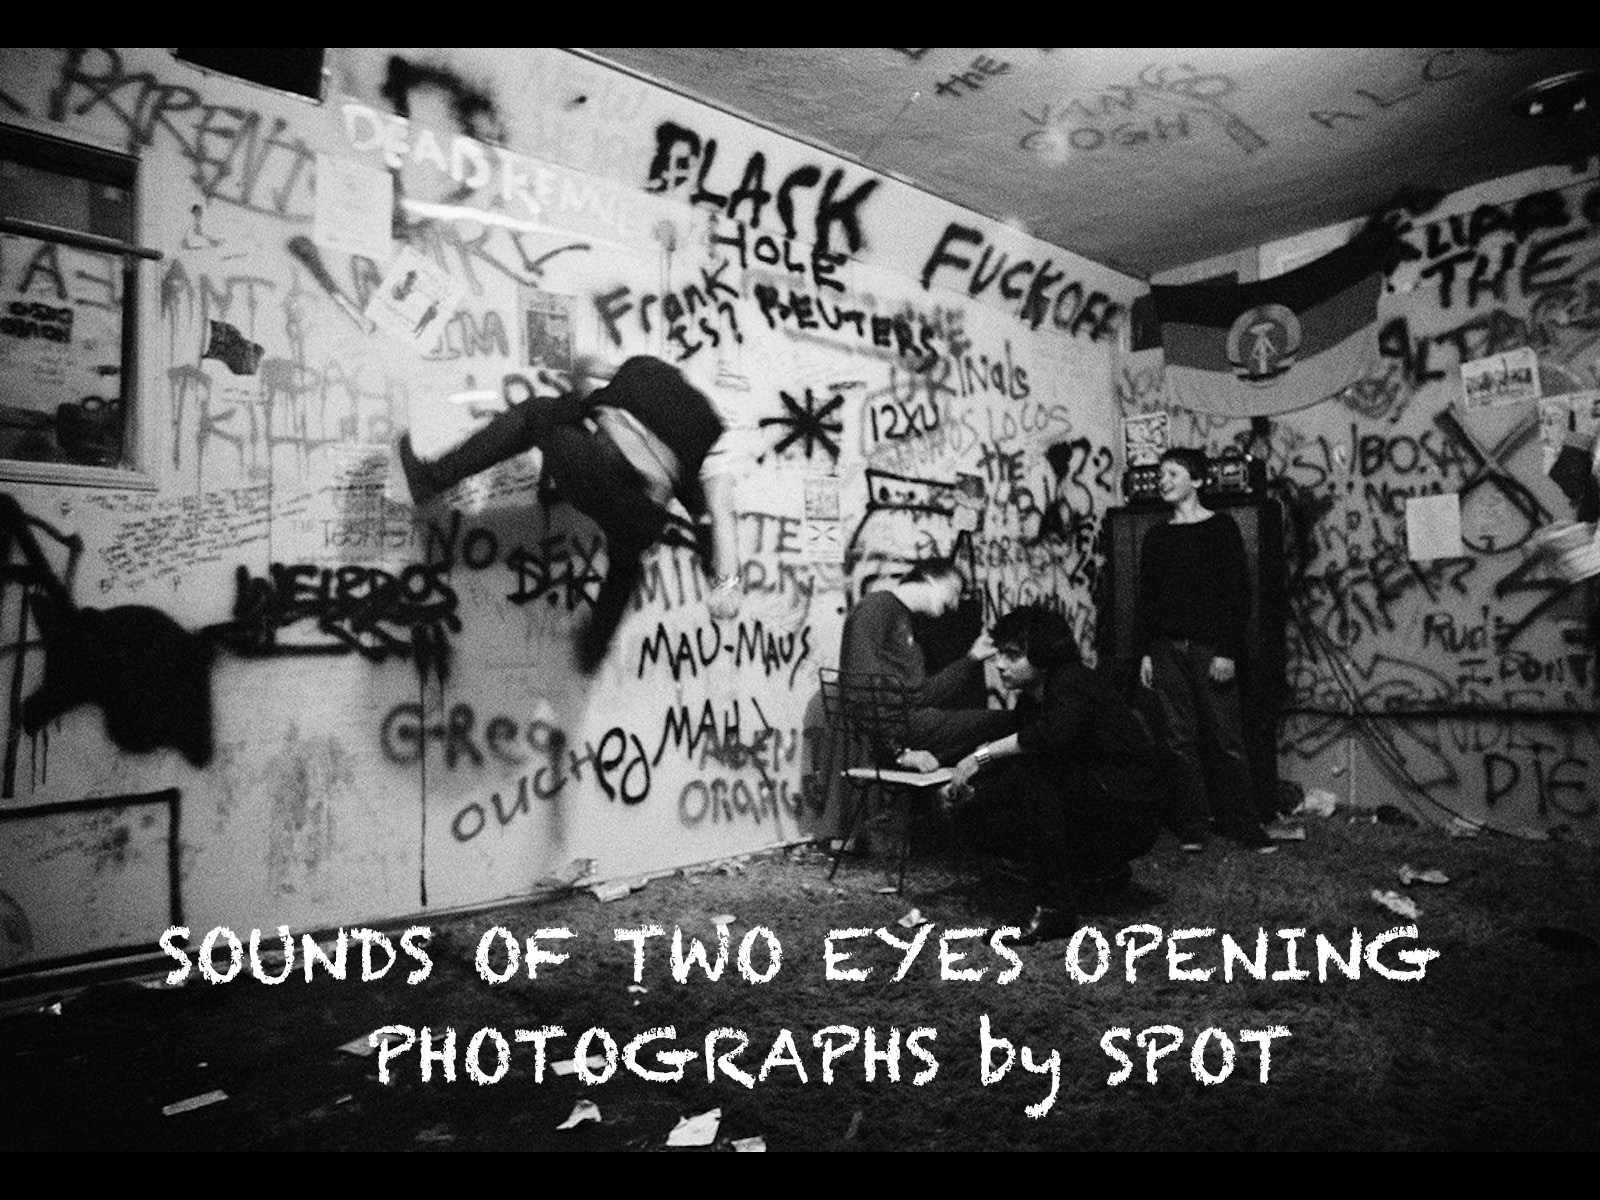 SOUNDS OF TWO EYES OPENING – PHOTOGRAPHS by SPOT